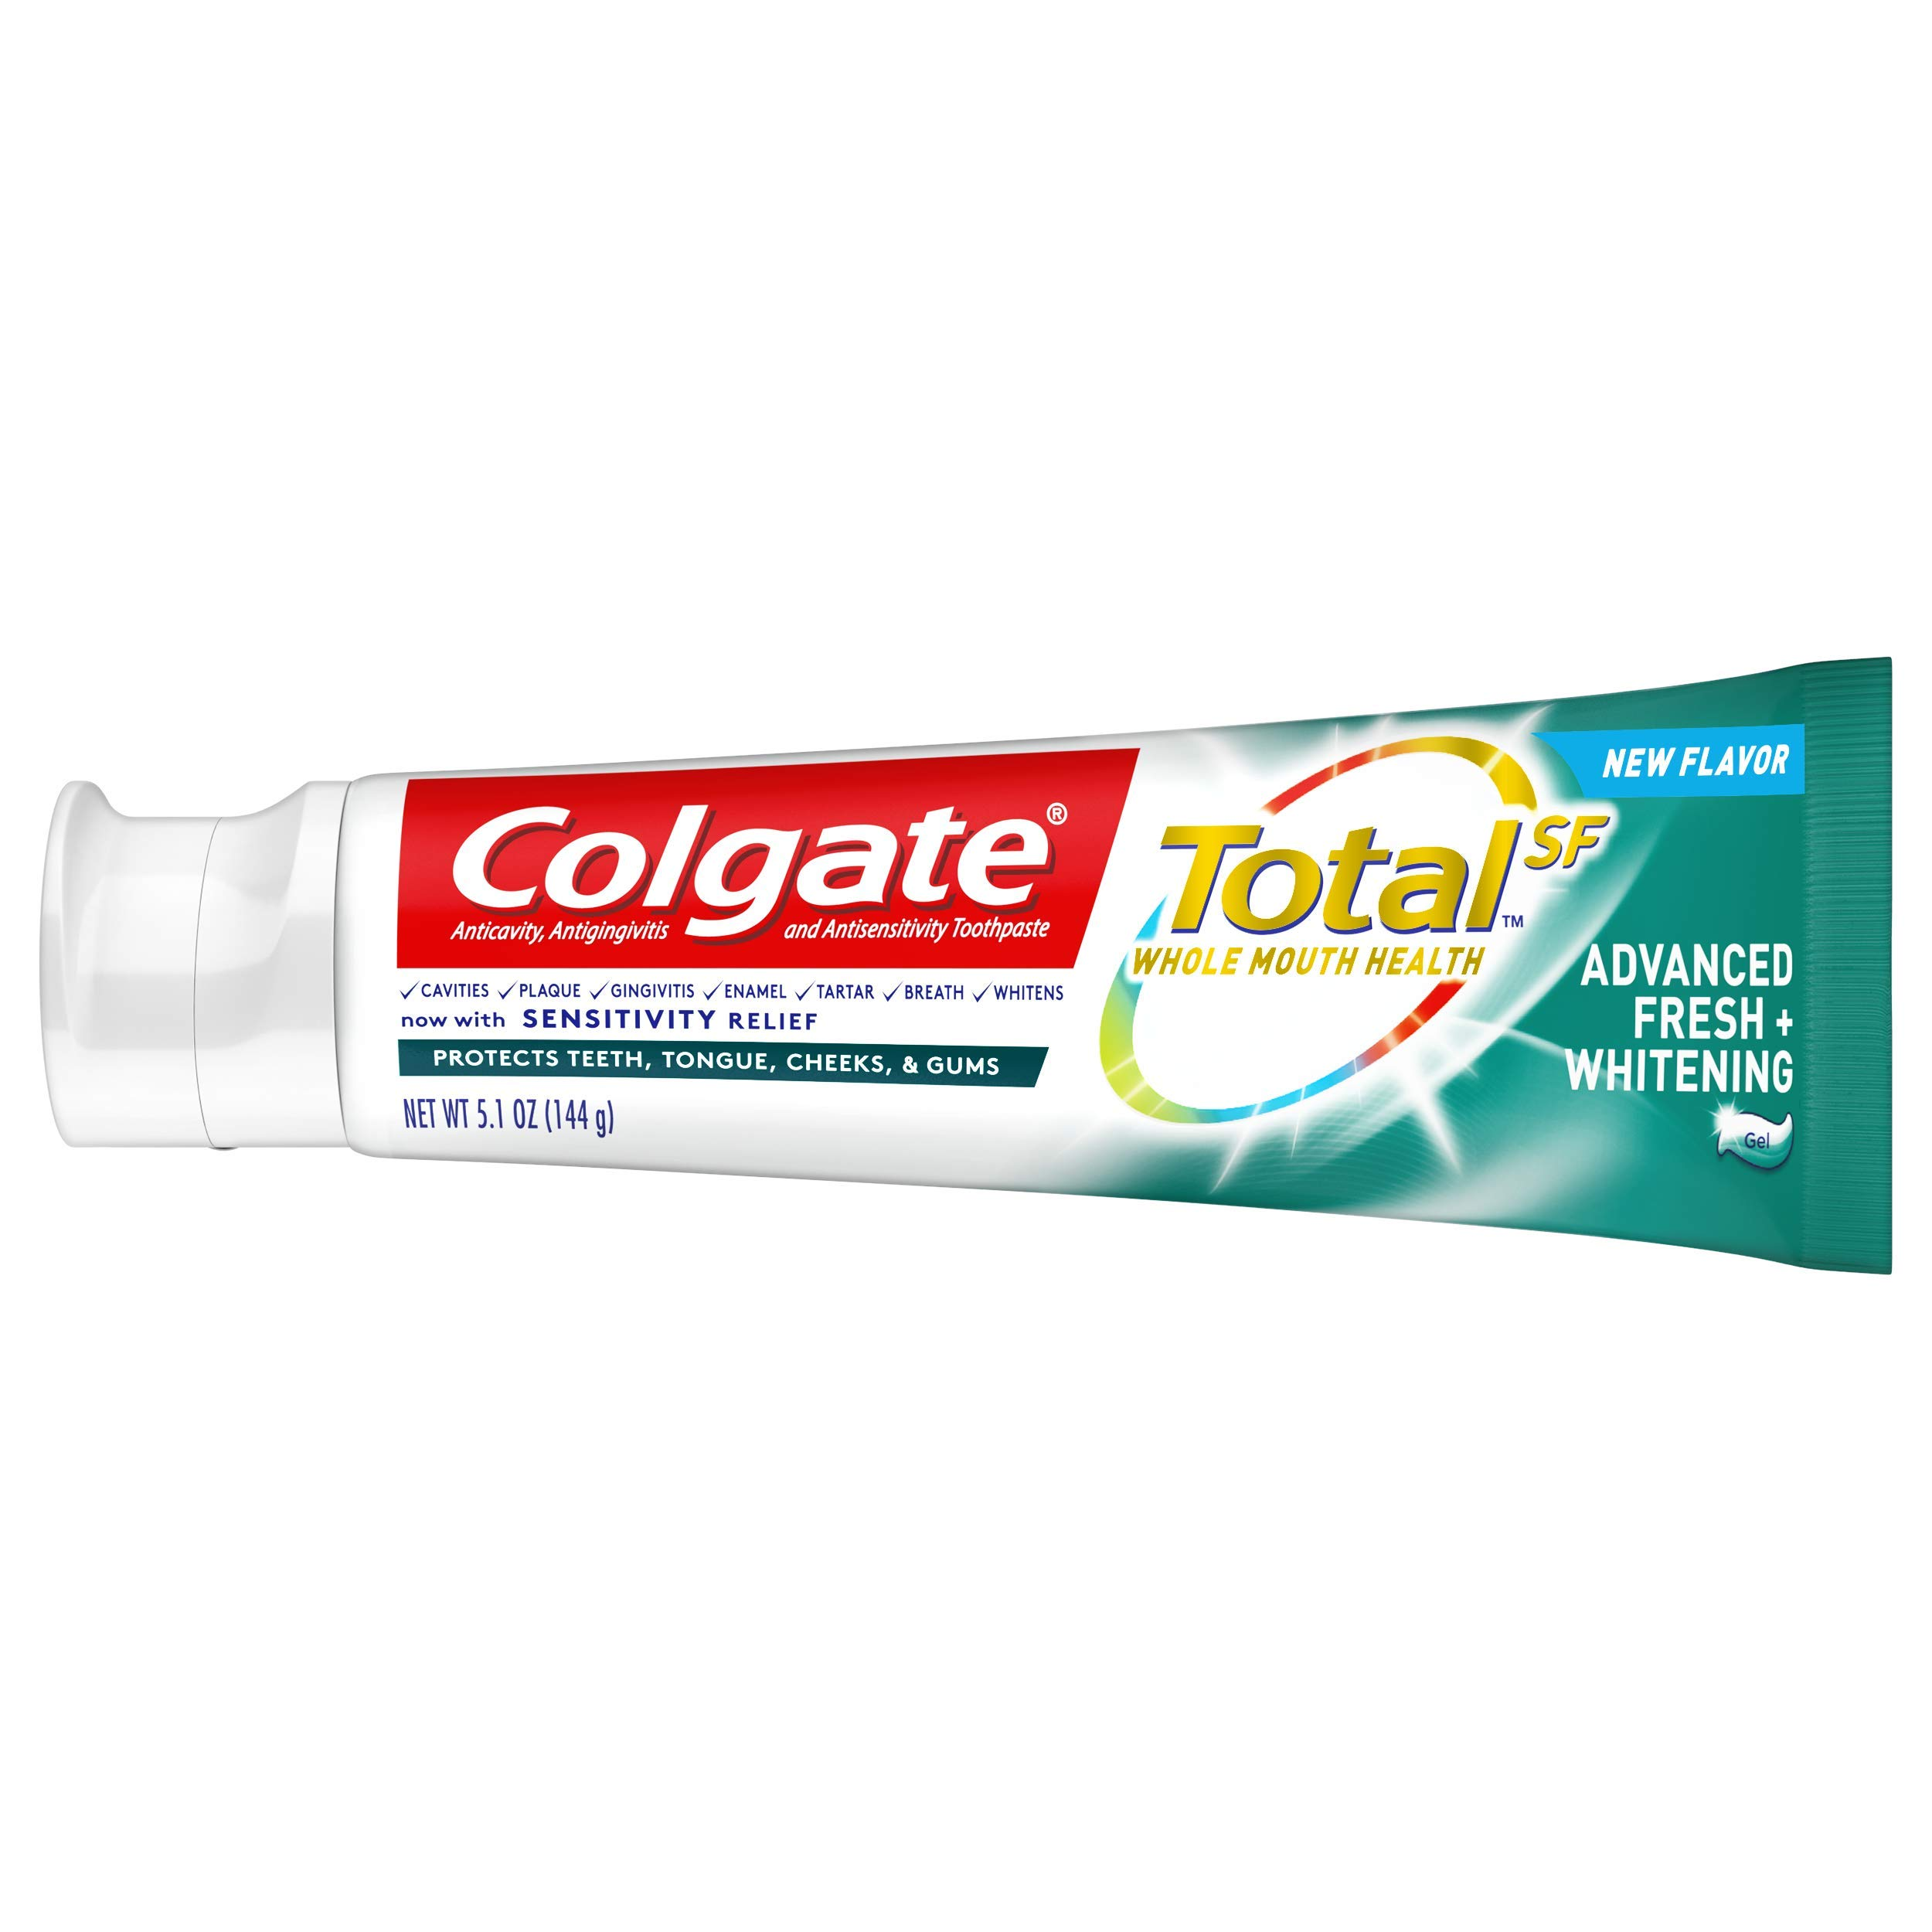 Colgate Total Advanced Fresh + Whitening Gel Toothpaste, 4 Count by Colgate (Image #7)